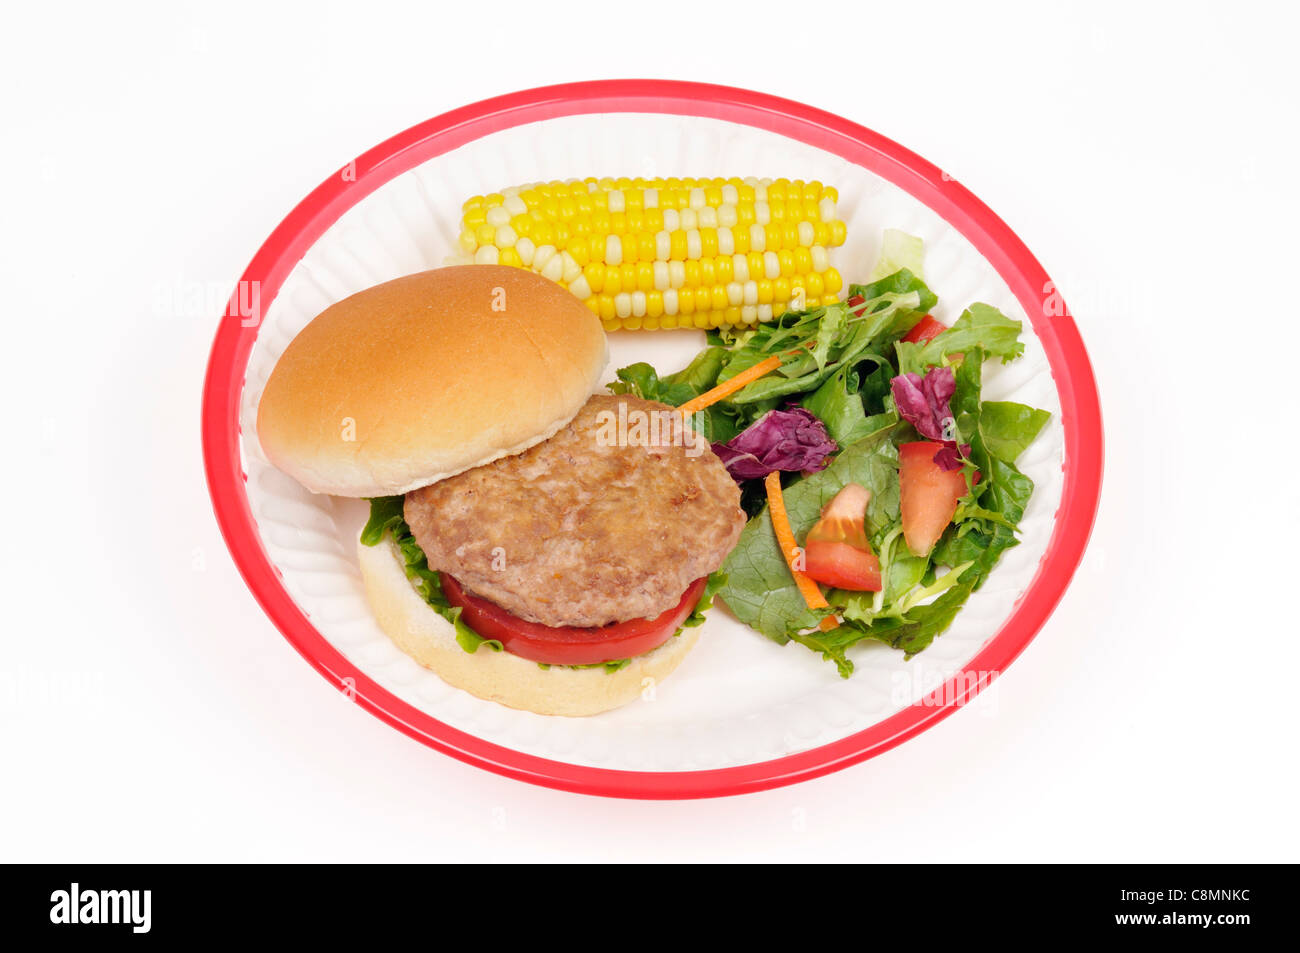 Turkey burger with lettuce and tomato in bread roll with ear of sweet corn and salad in red retro plastic basket - Stock Image